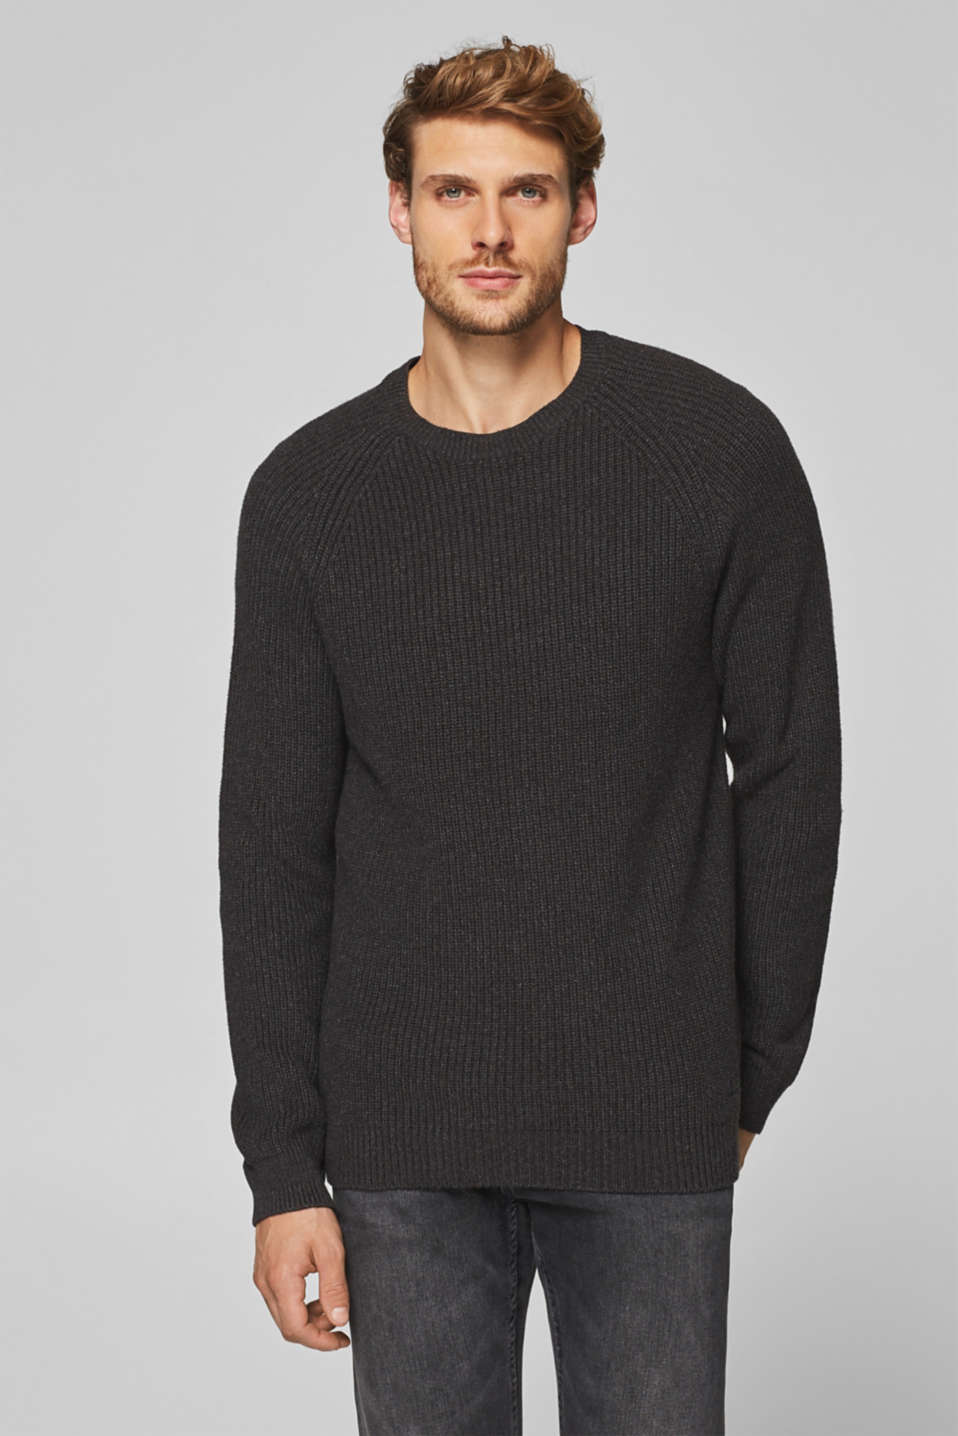 Esprit - Jumper with a ribbed pattern, 100% cotton